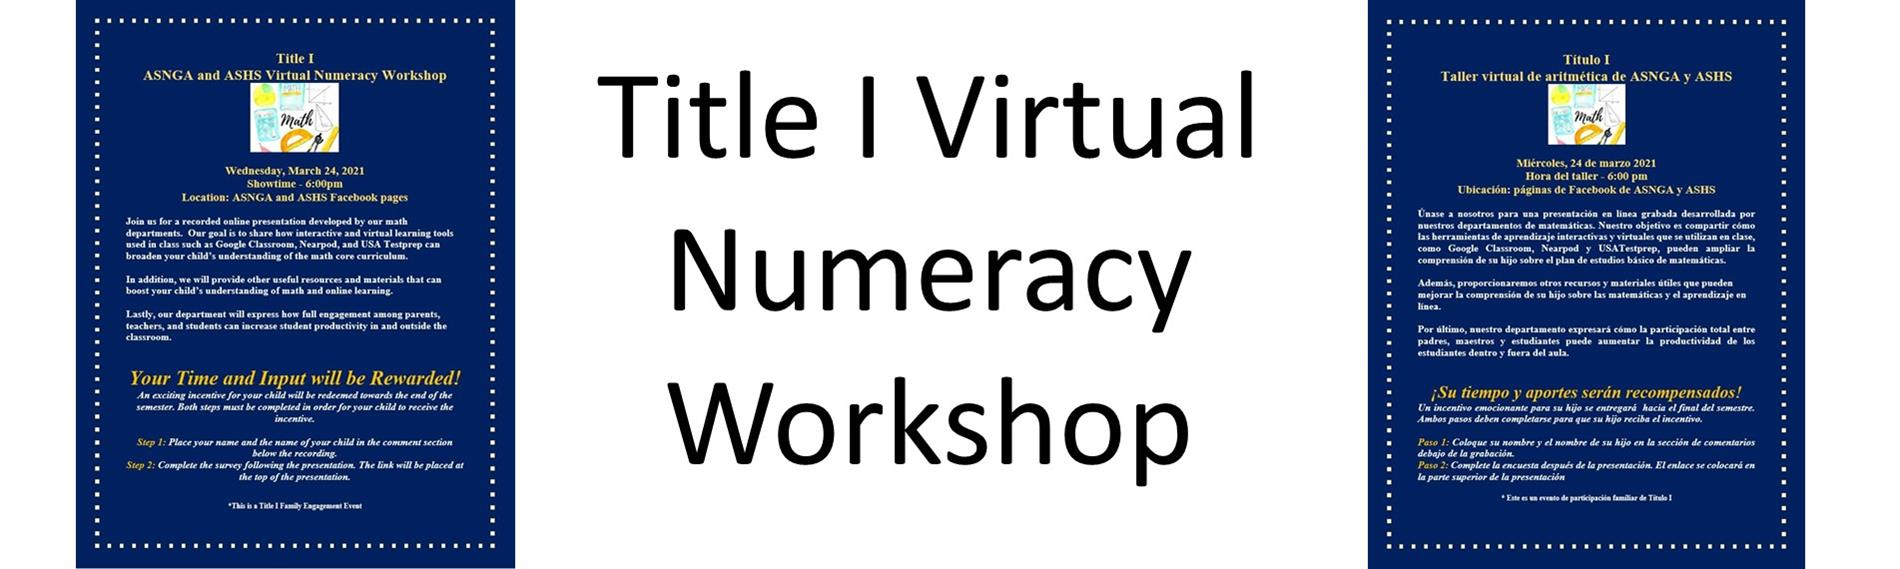 Flyer for Numeracy Workshop in English and Spanish